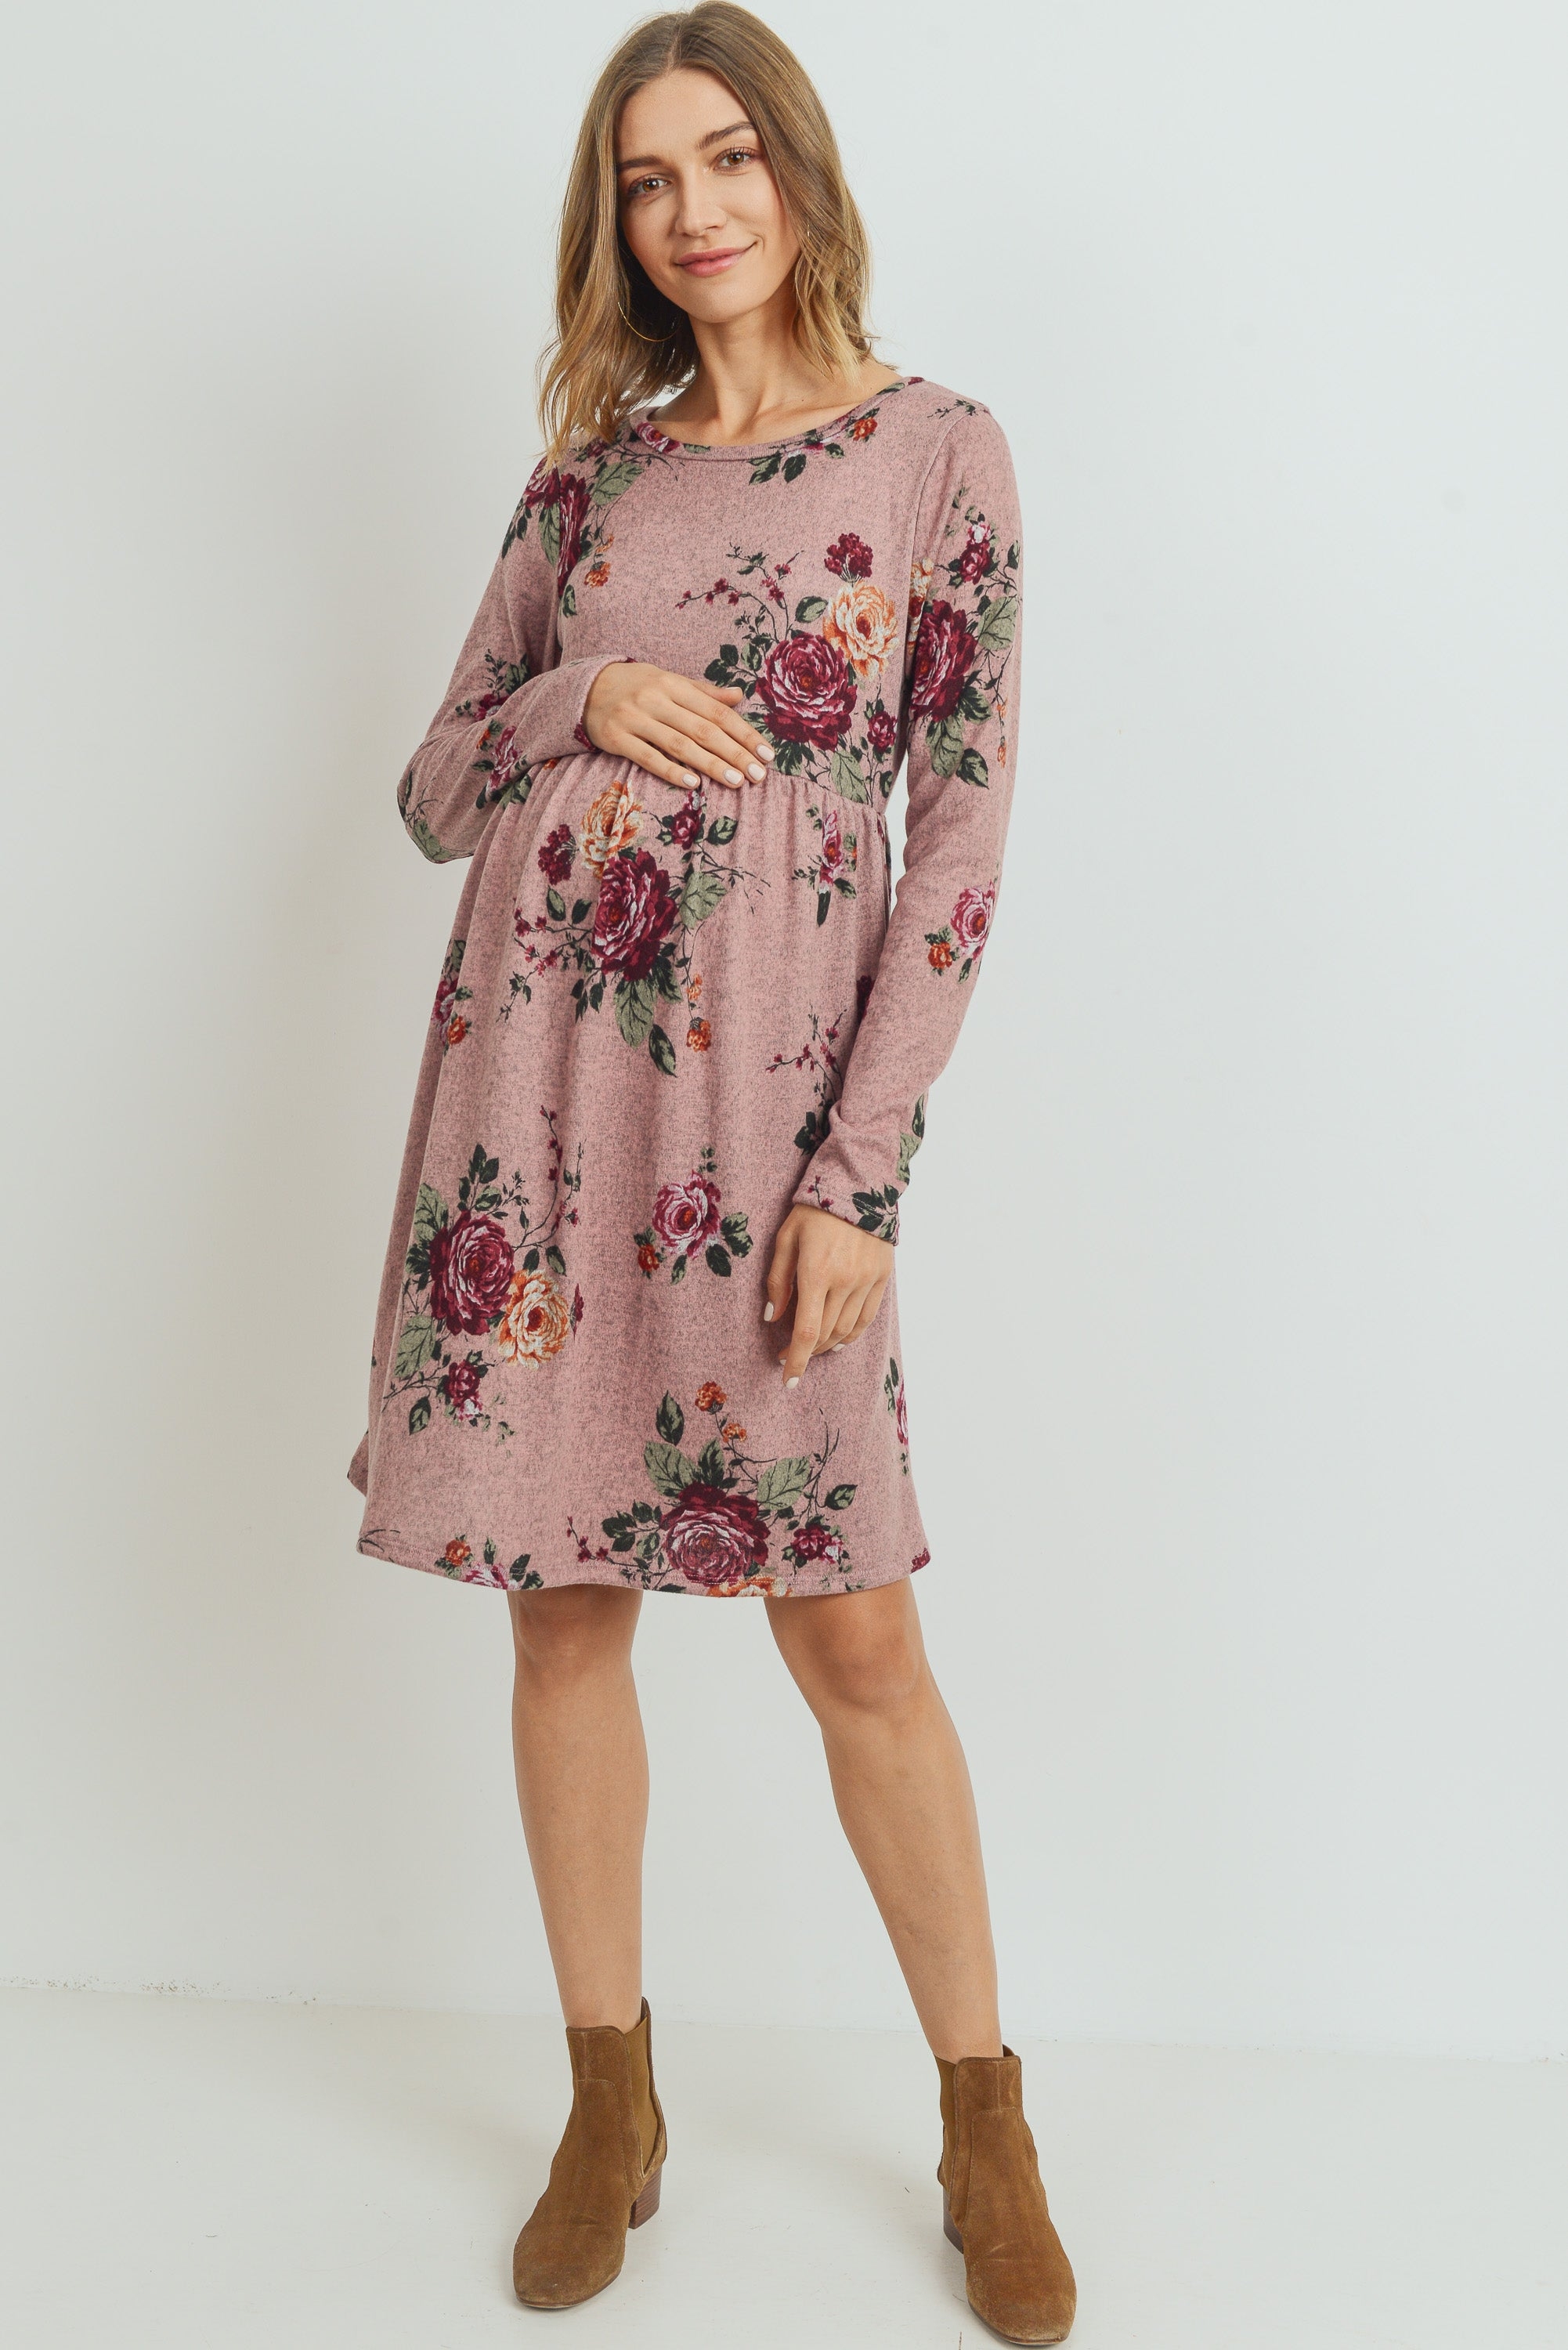 LONG SLEEVE SIDE POCKET MATERNITY DRESS